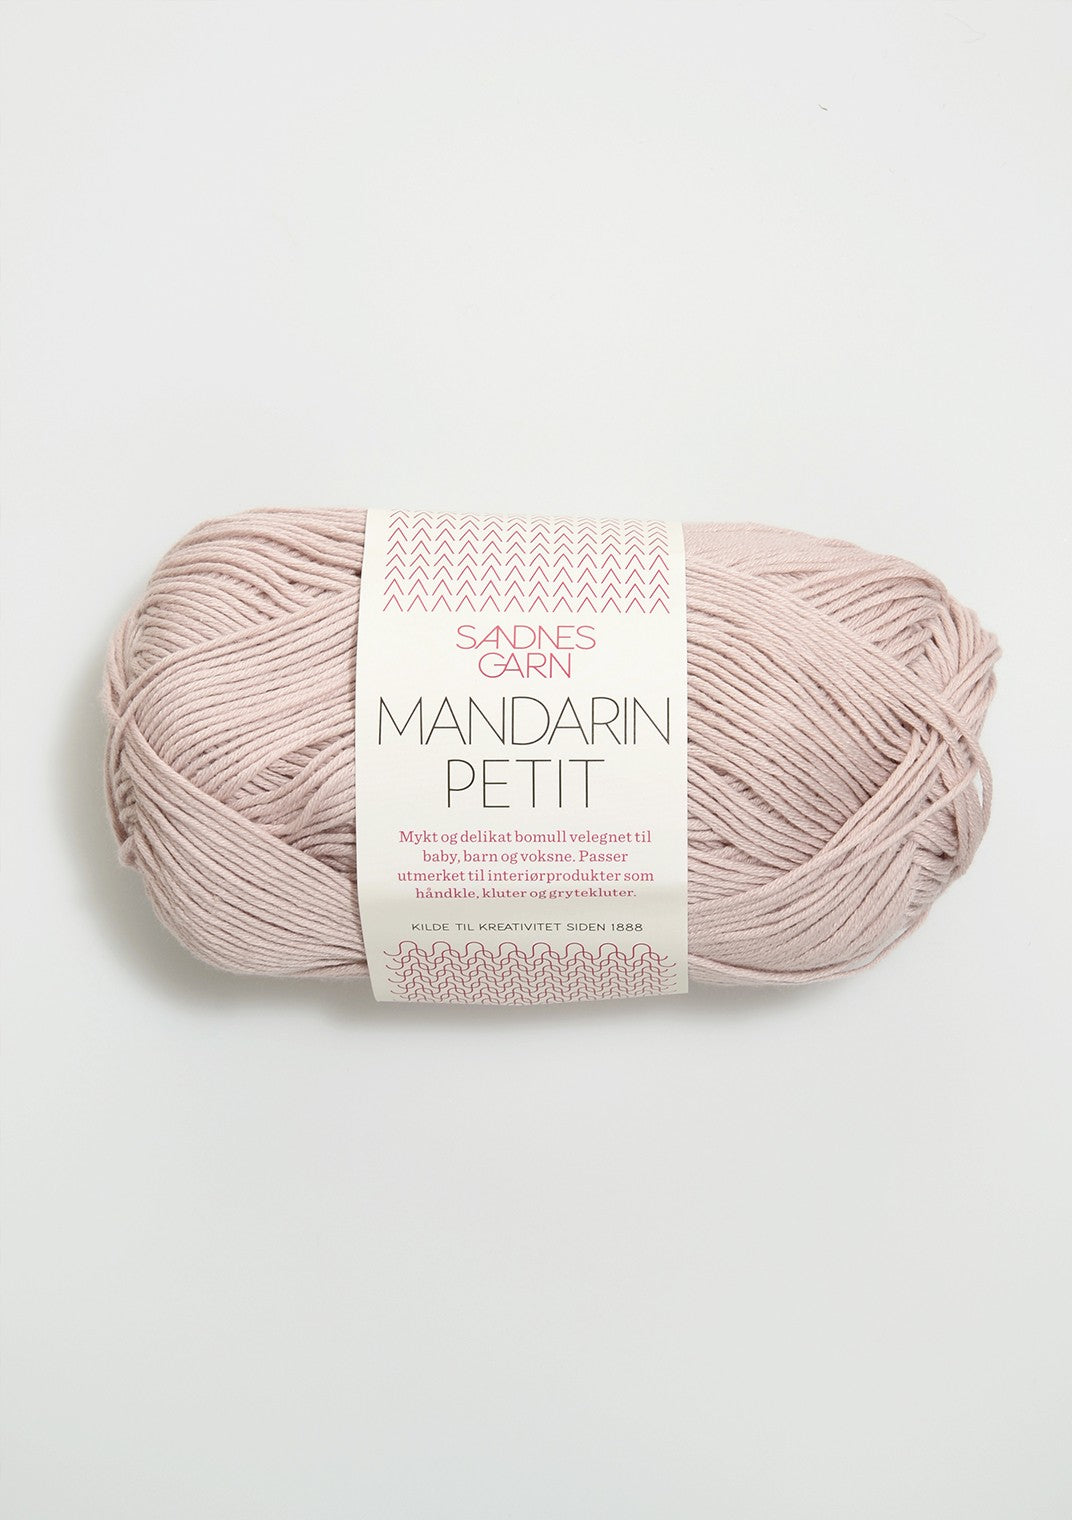 Sandnes Garn, Mandarin Petit, 100% Egyptian Cotton, Fingering #1